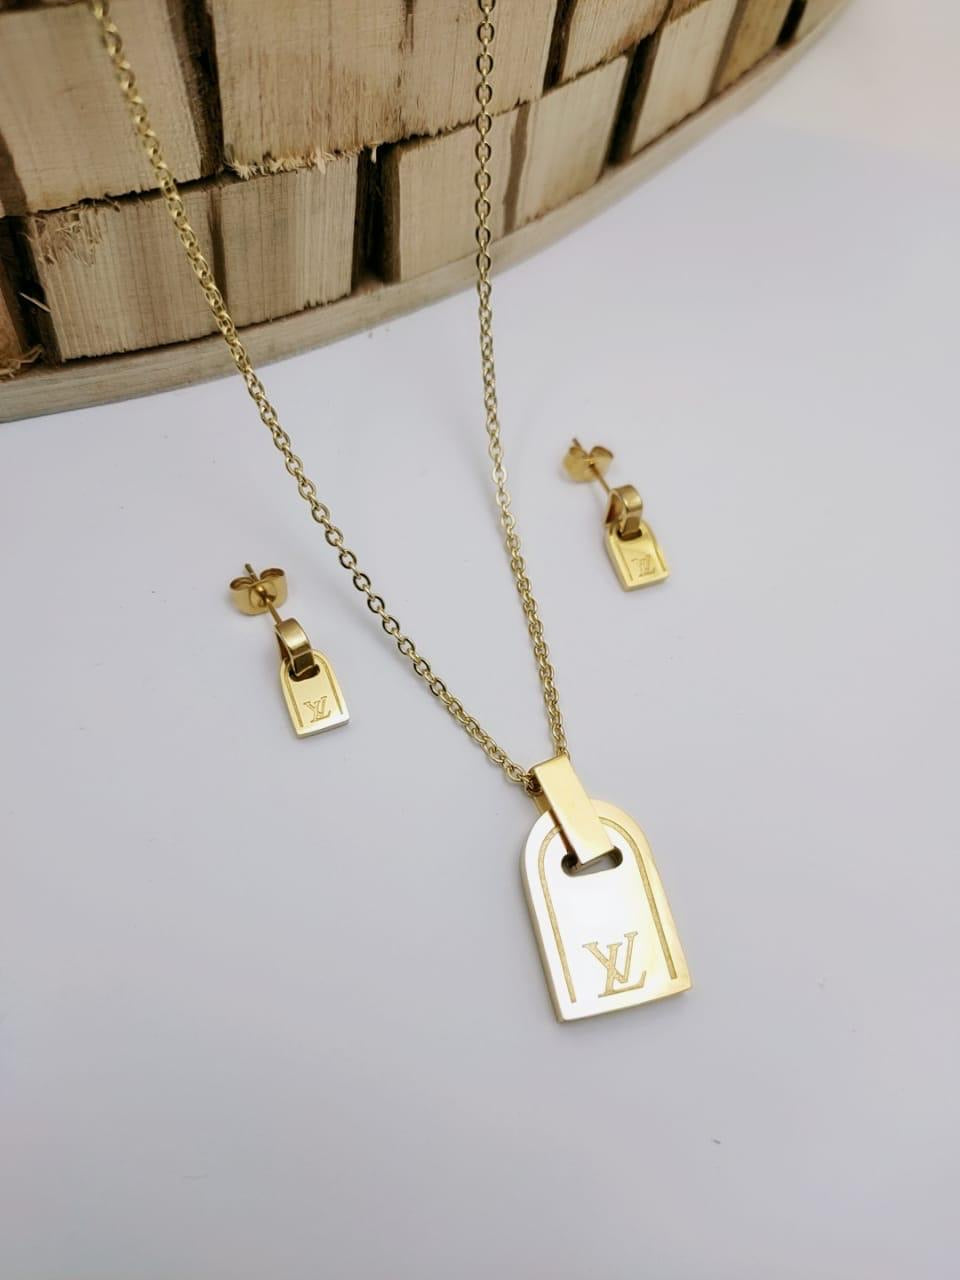 LV Label Shaped Designer Pendant with tops/earrings